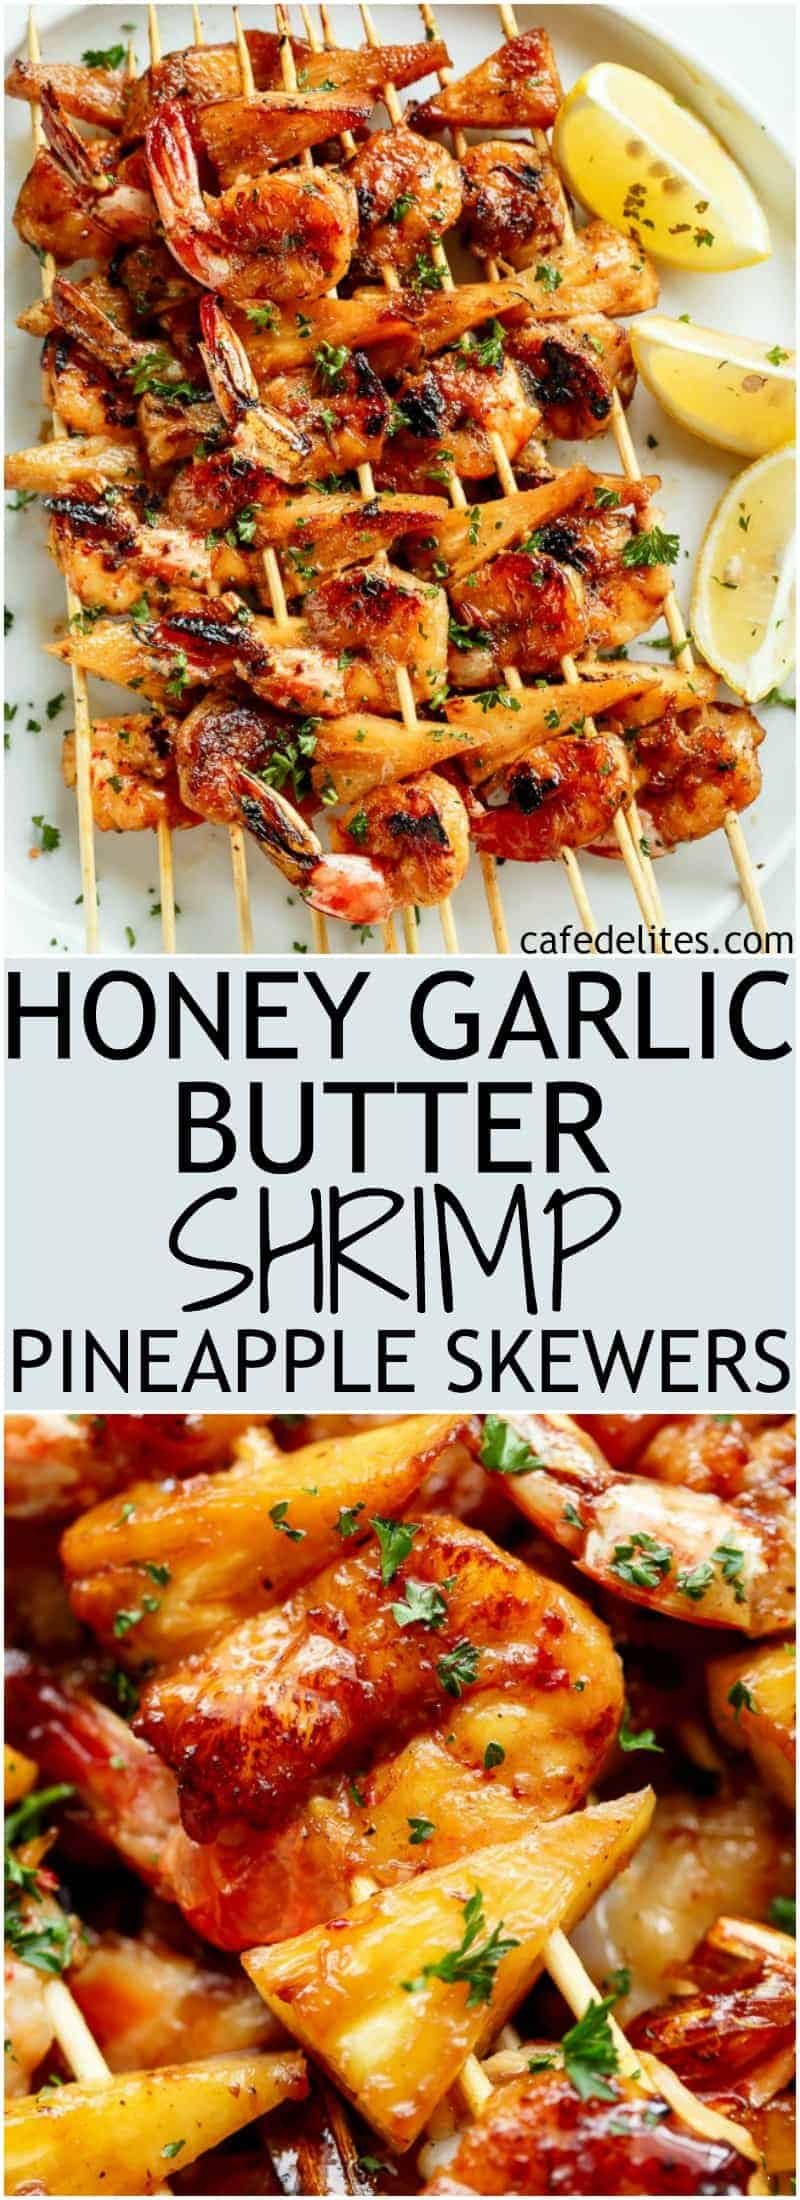 Honey Garlic Butter Shrimp Pineapple Skewers are cooked in the most incredible honey garlic butter sauce! Sweet and buttery, a family favourite! | https://cafedelites.com